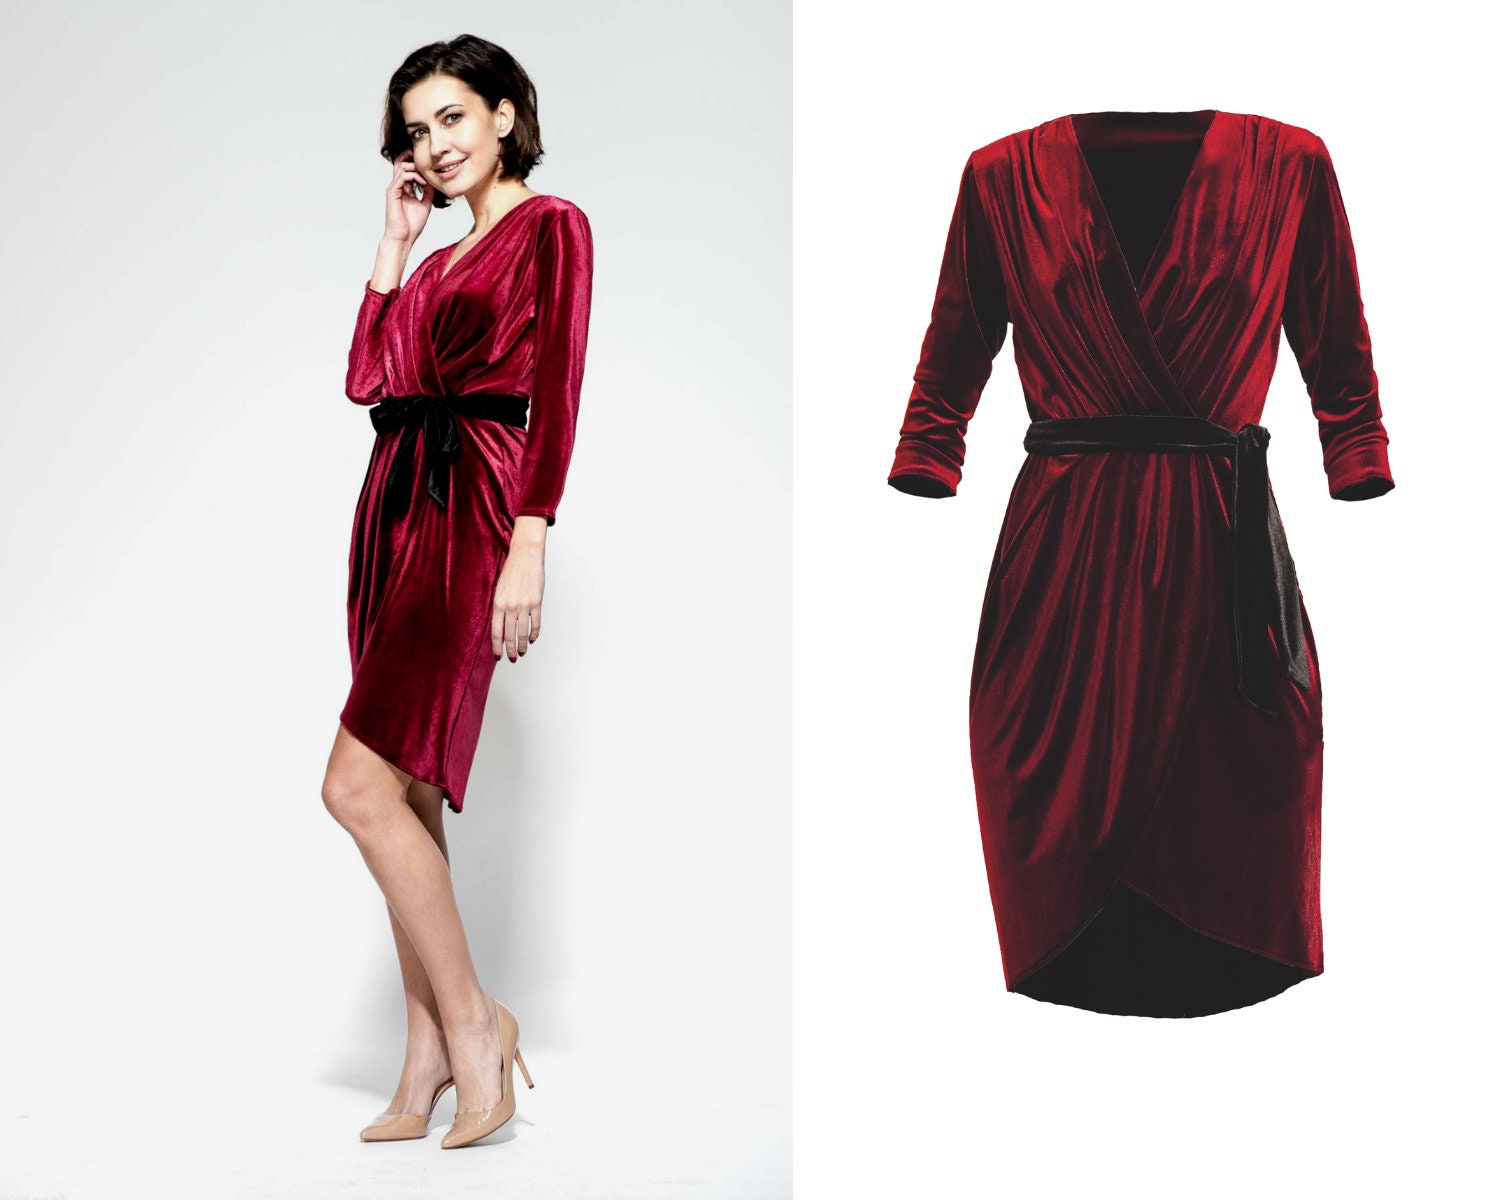 d6134b08 wine color envelope dress - velvet dress - midi dress - vneck dress -  elegant dress -party dress - velvet cocktail dress, calf length